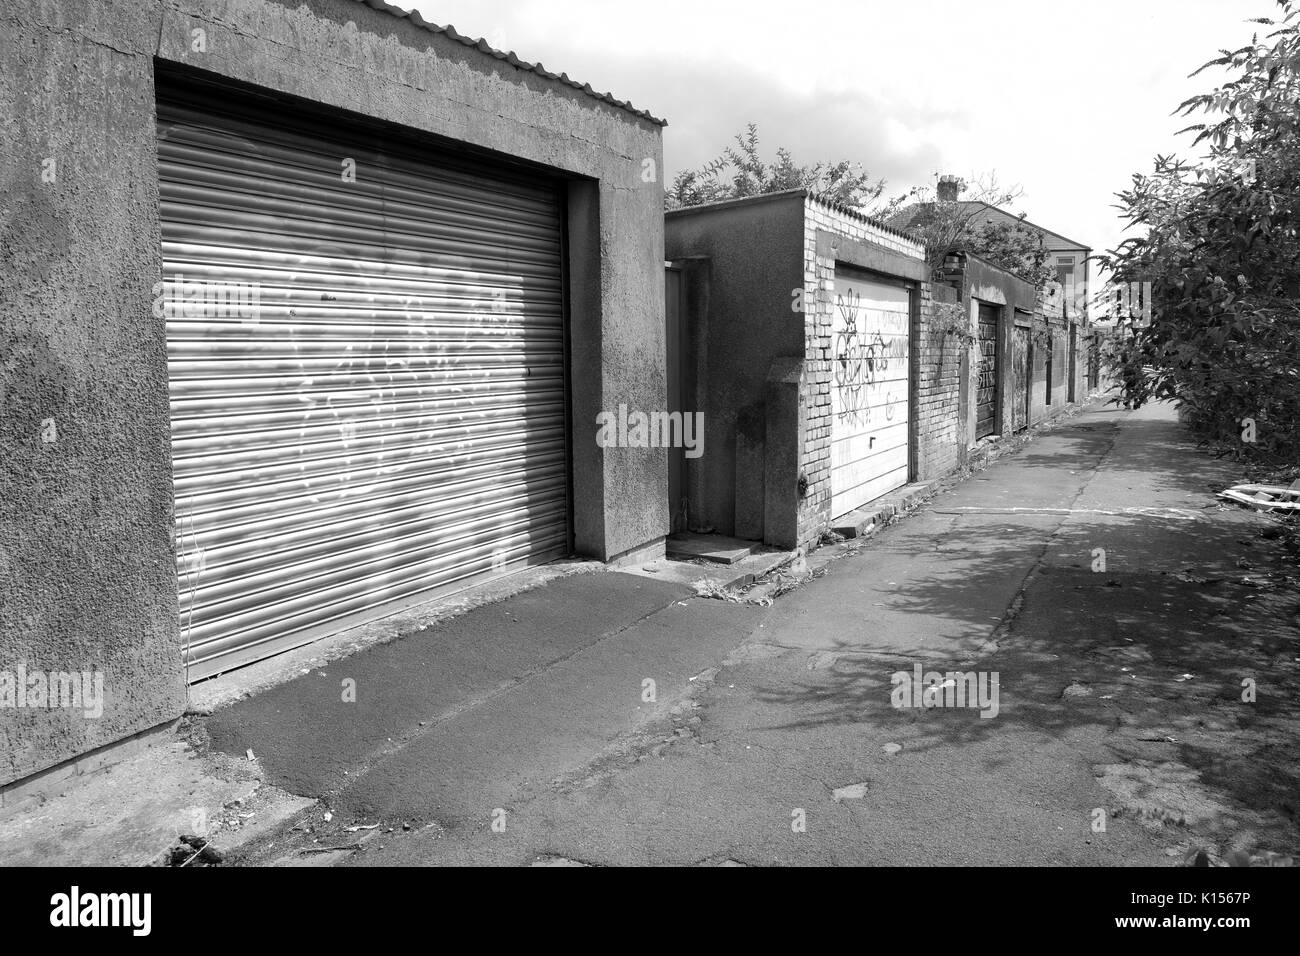 Garage doors in a back alley in central Cardiff, South Wales. - Stock Image